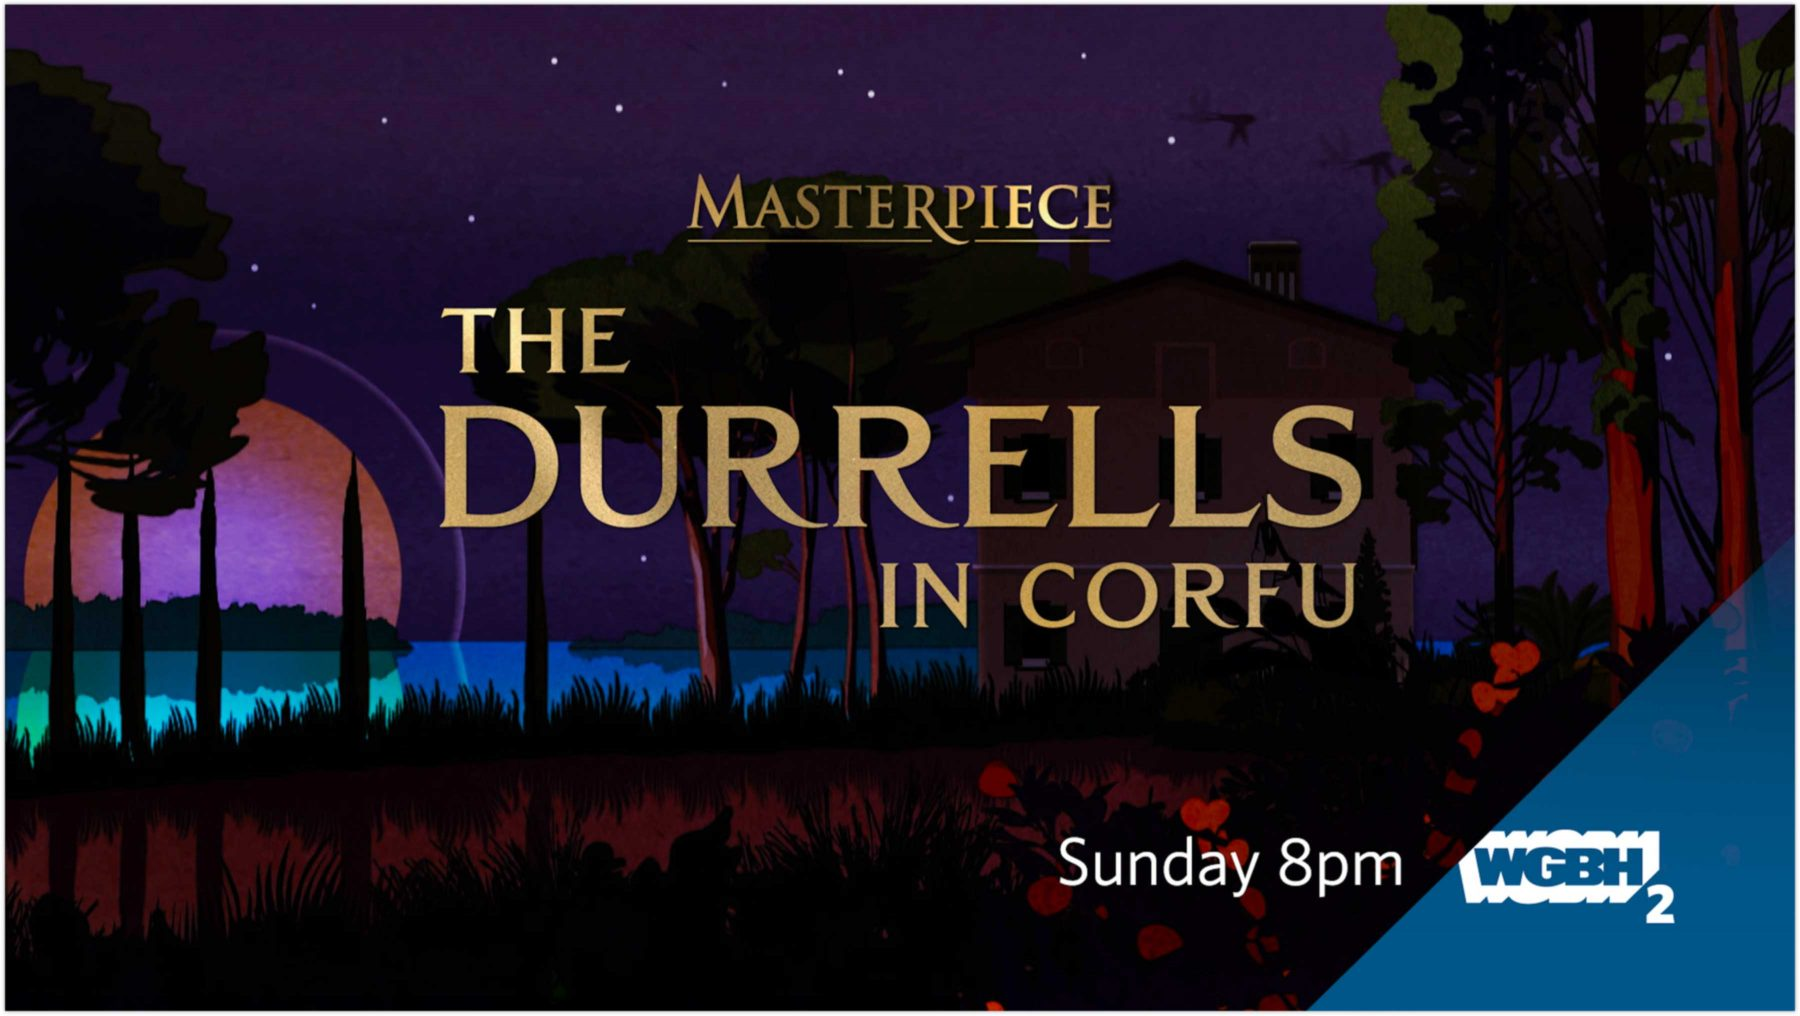 WGBH The Durrells in Corfu digital advertisement